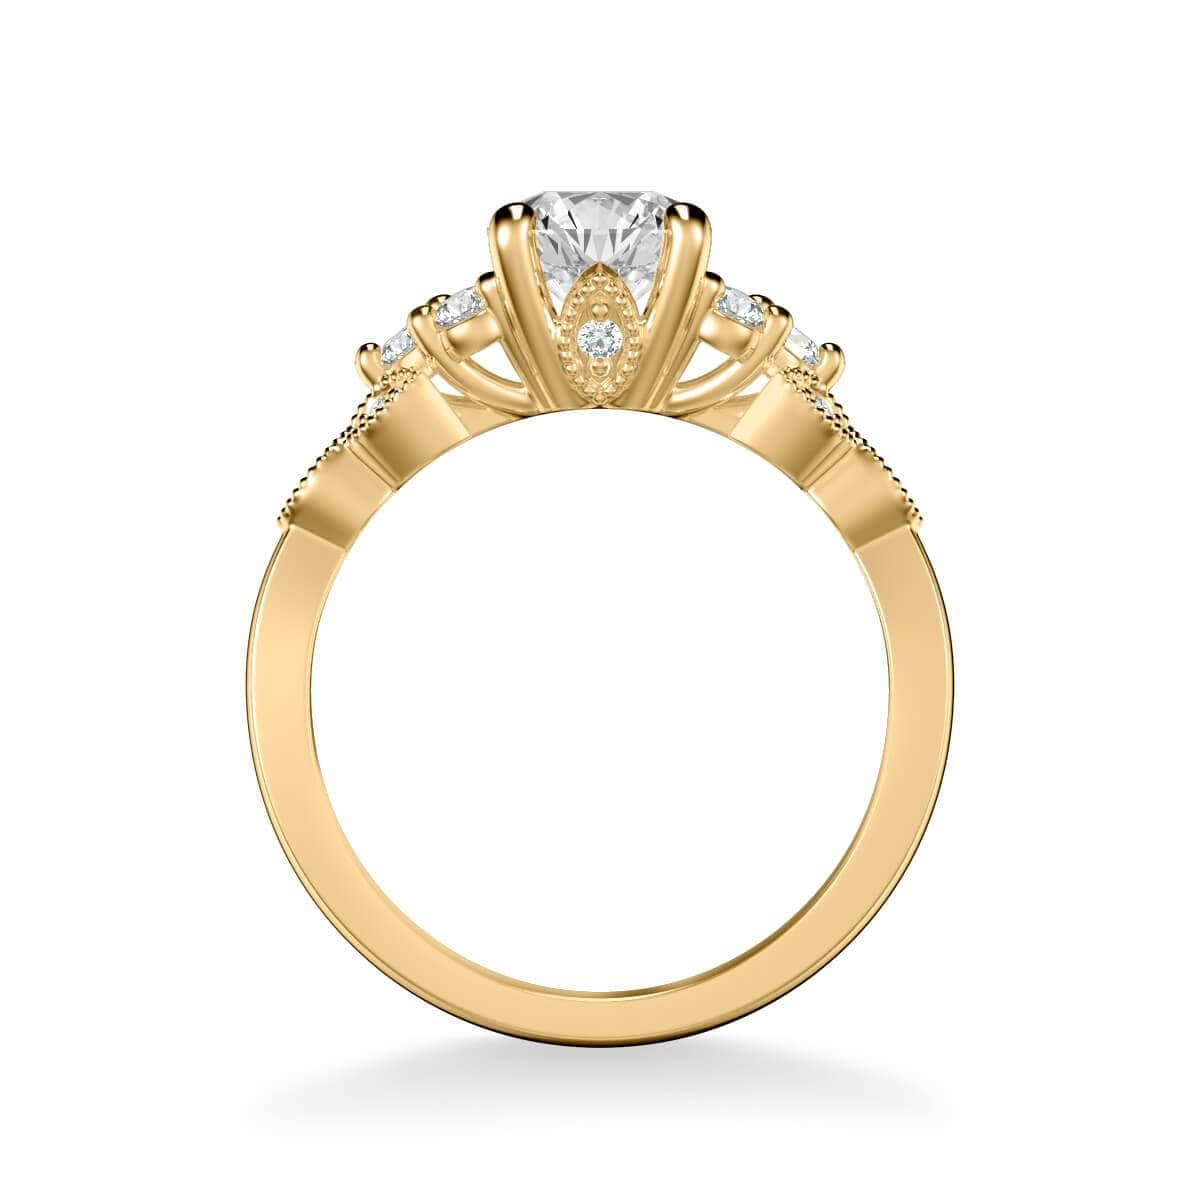 Adeline Contemporary Side Stone Floral Diamond Engagement Ring